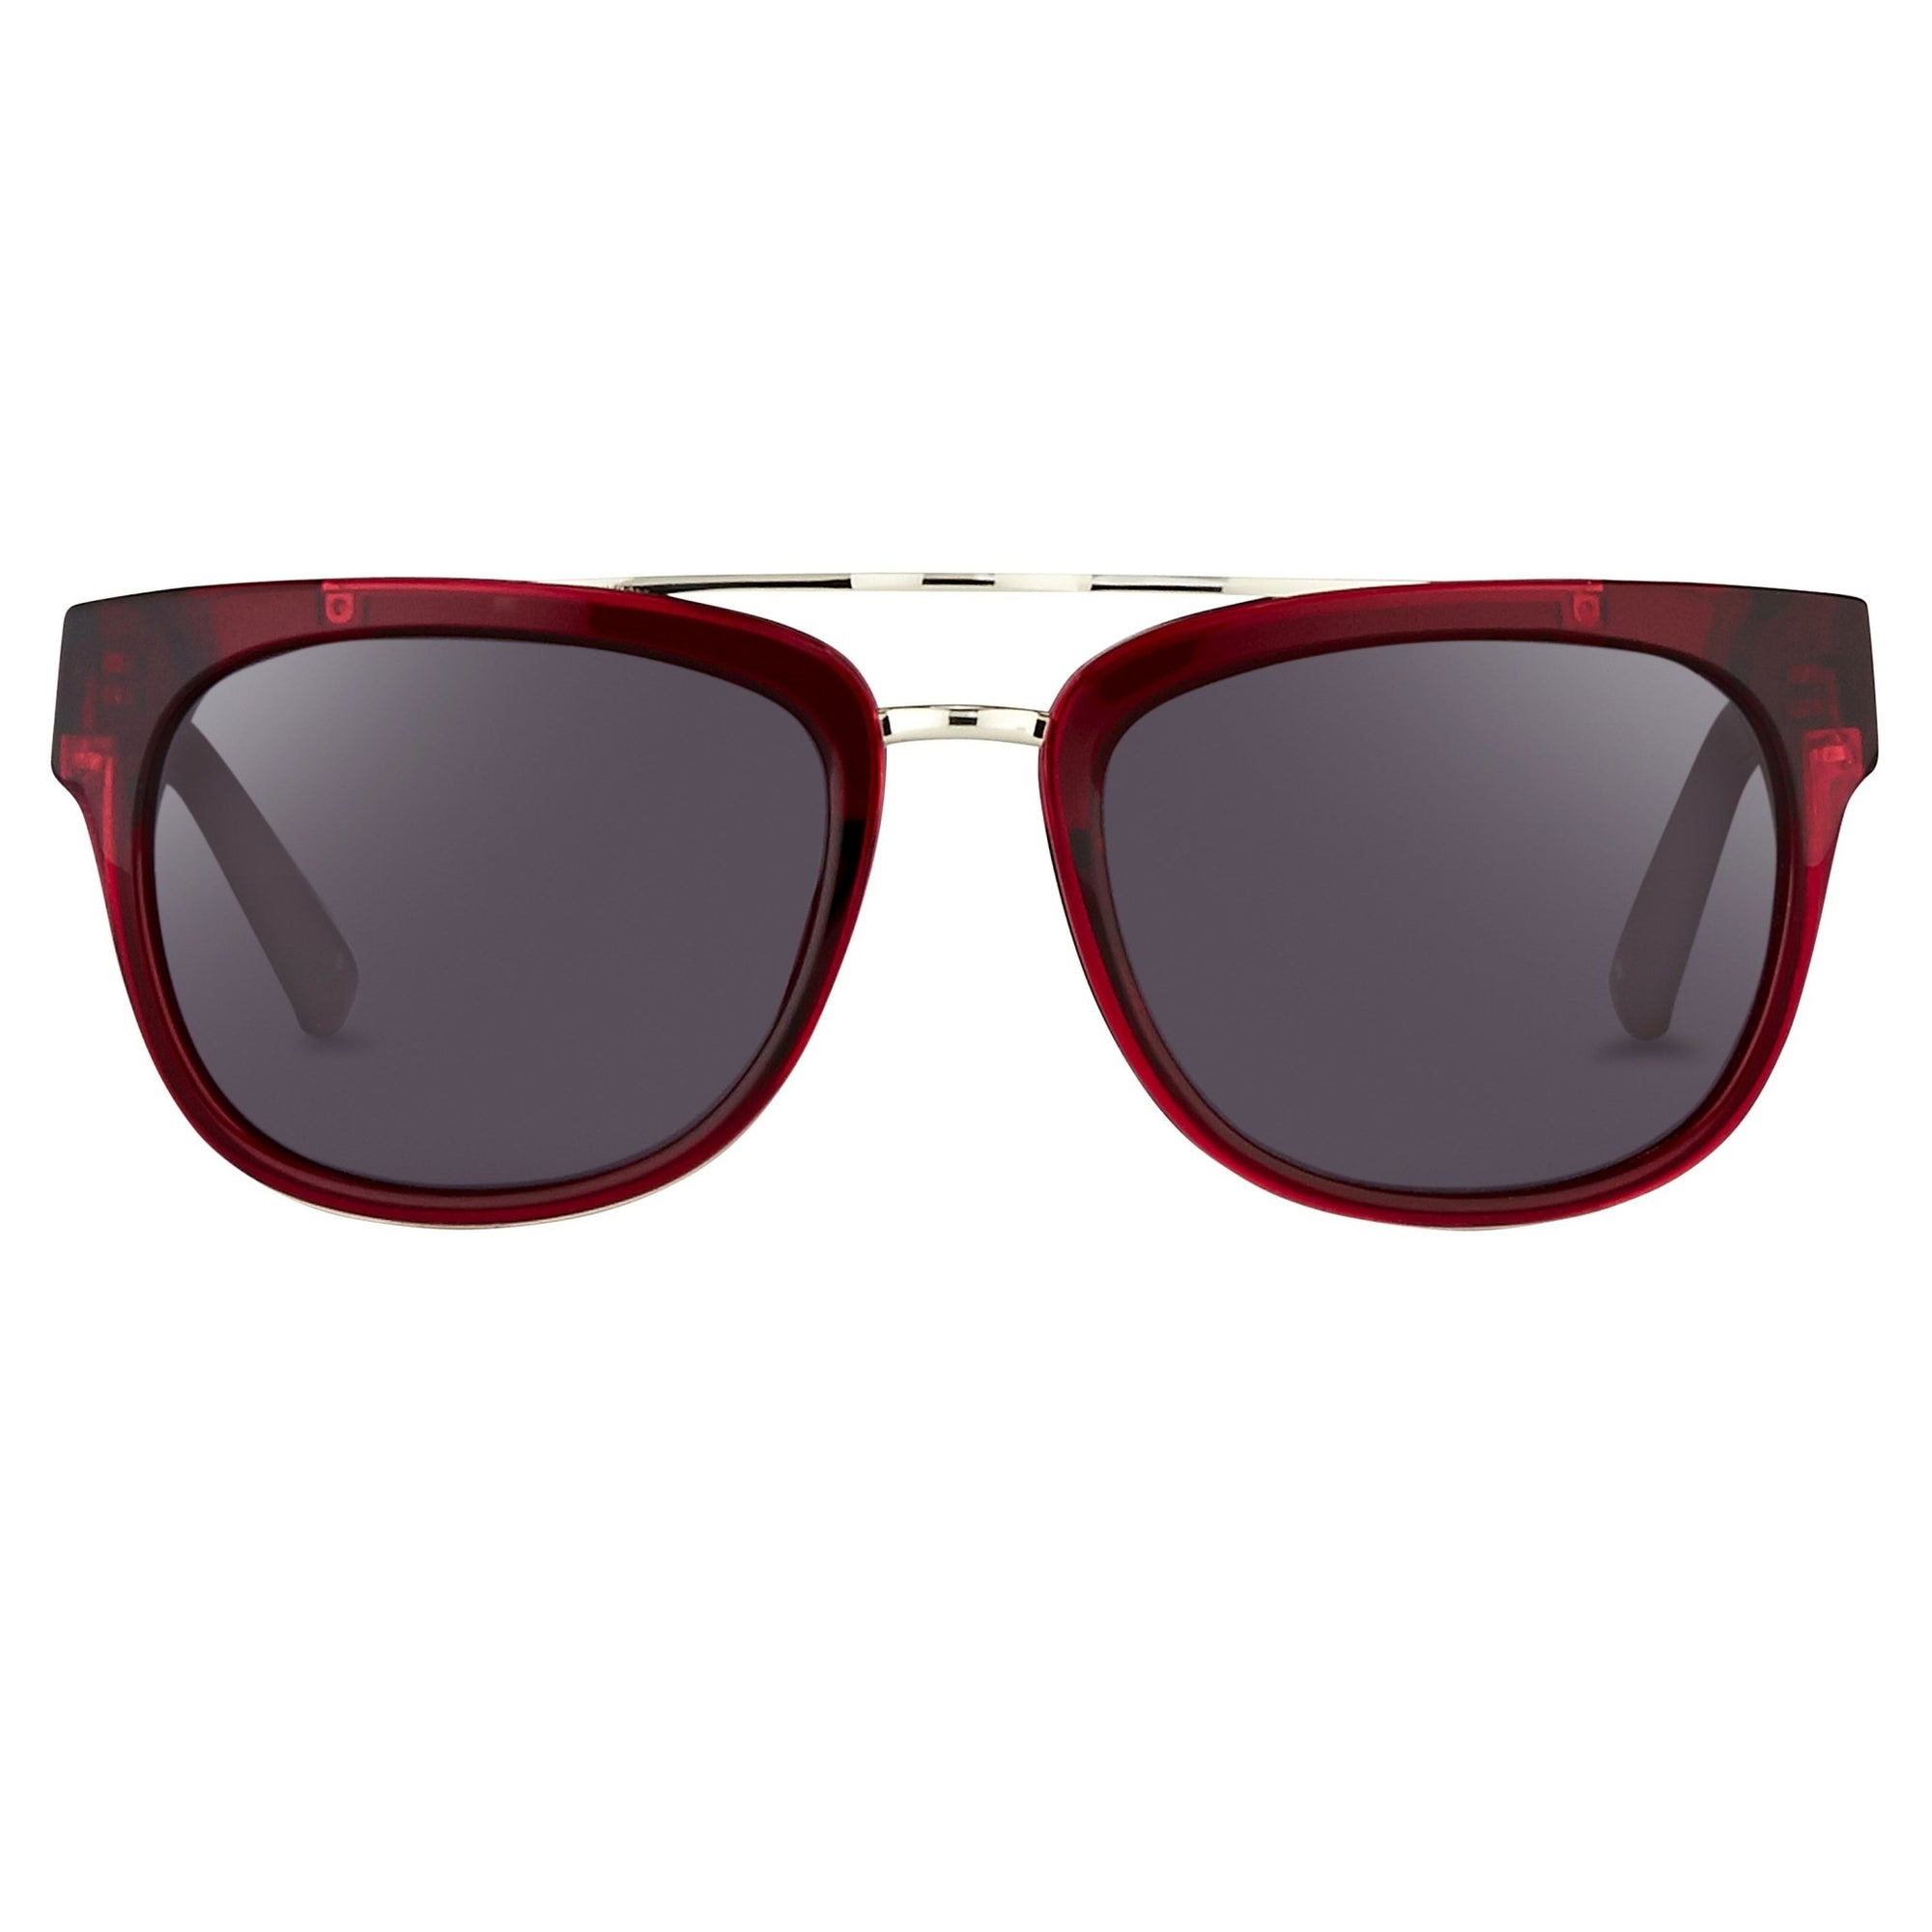 Phillip Lim Sunglasses with Rectangular Merlot Silver and Green Lenses Category 3 - PL144C4SUN - Watches & Crystals